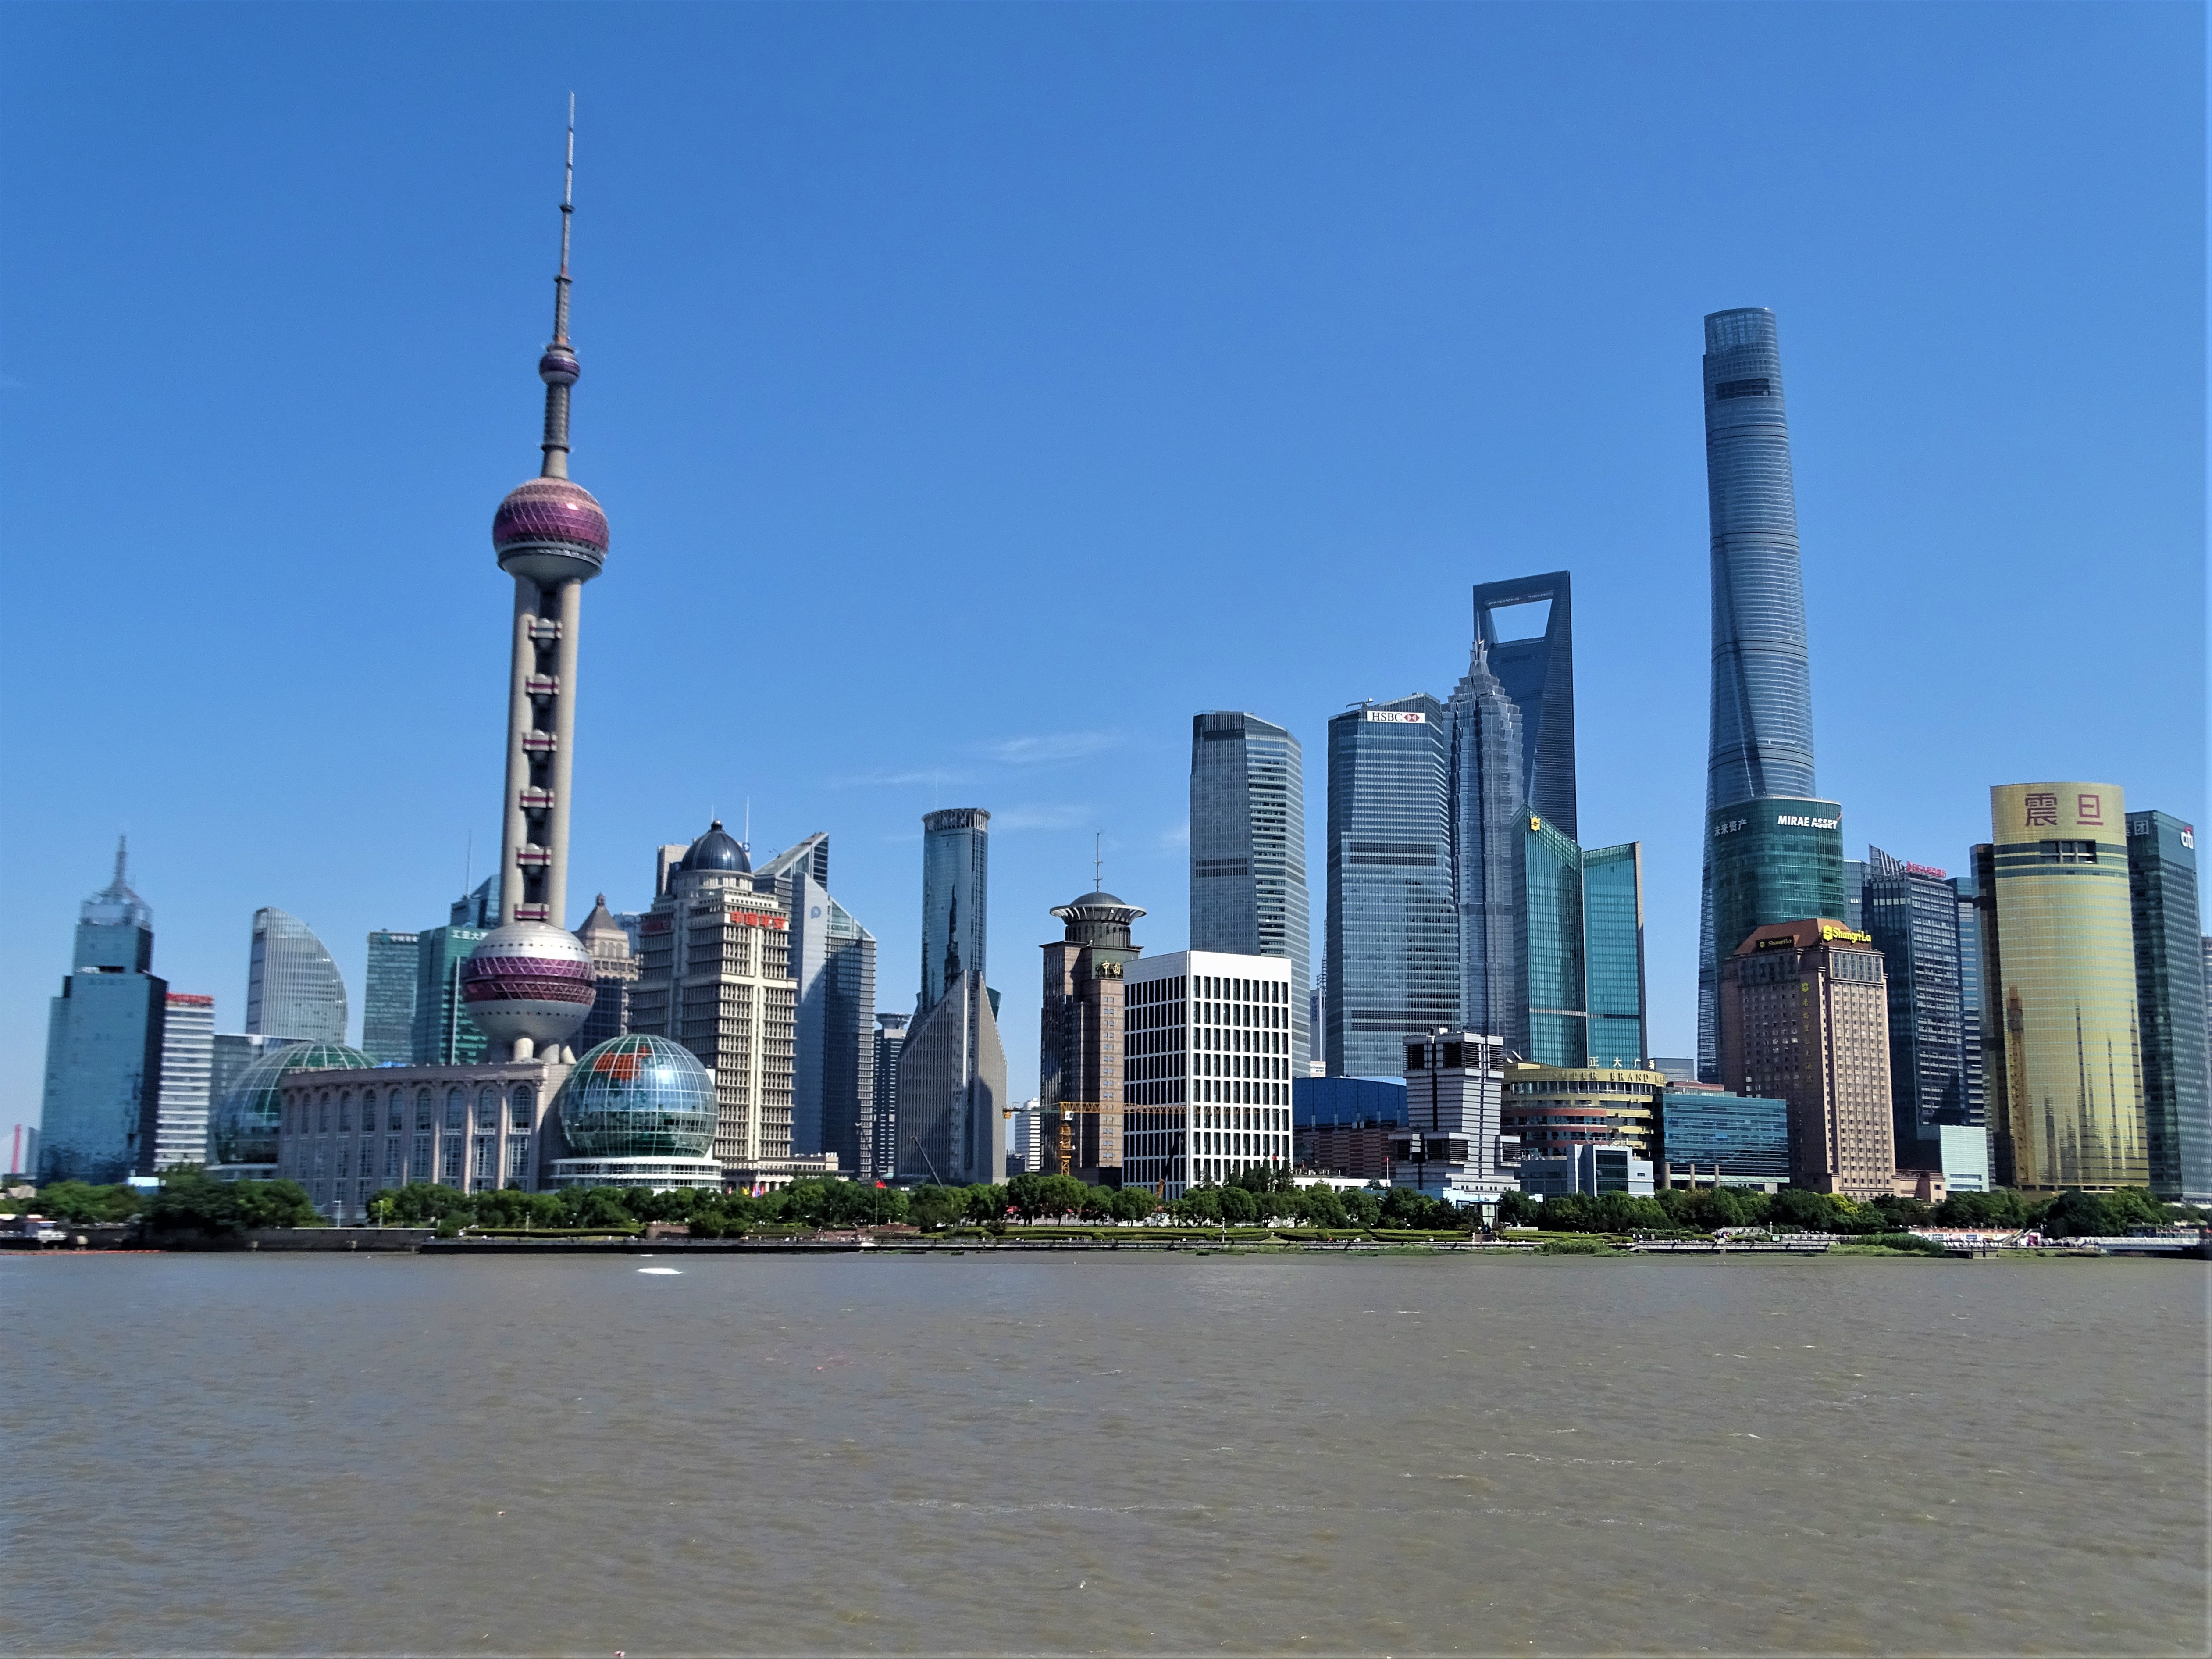 The famous Shanghai - Pudong skyline